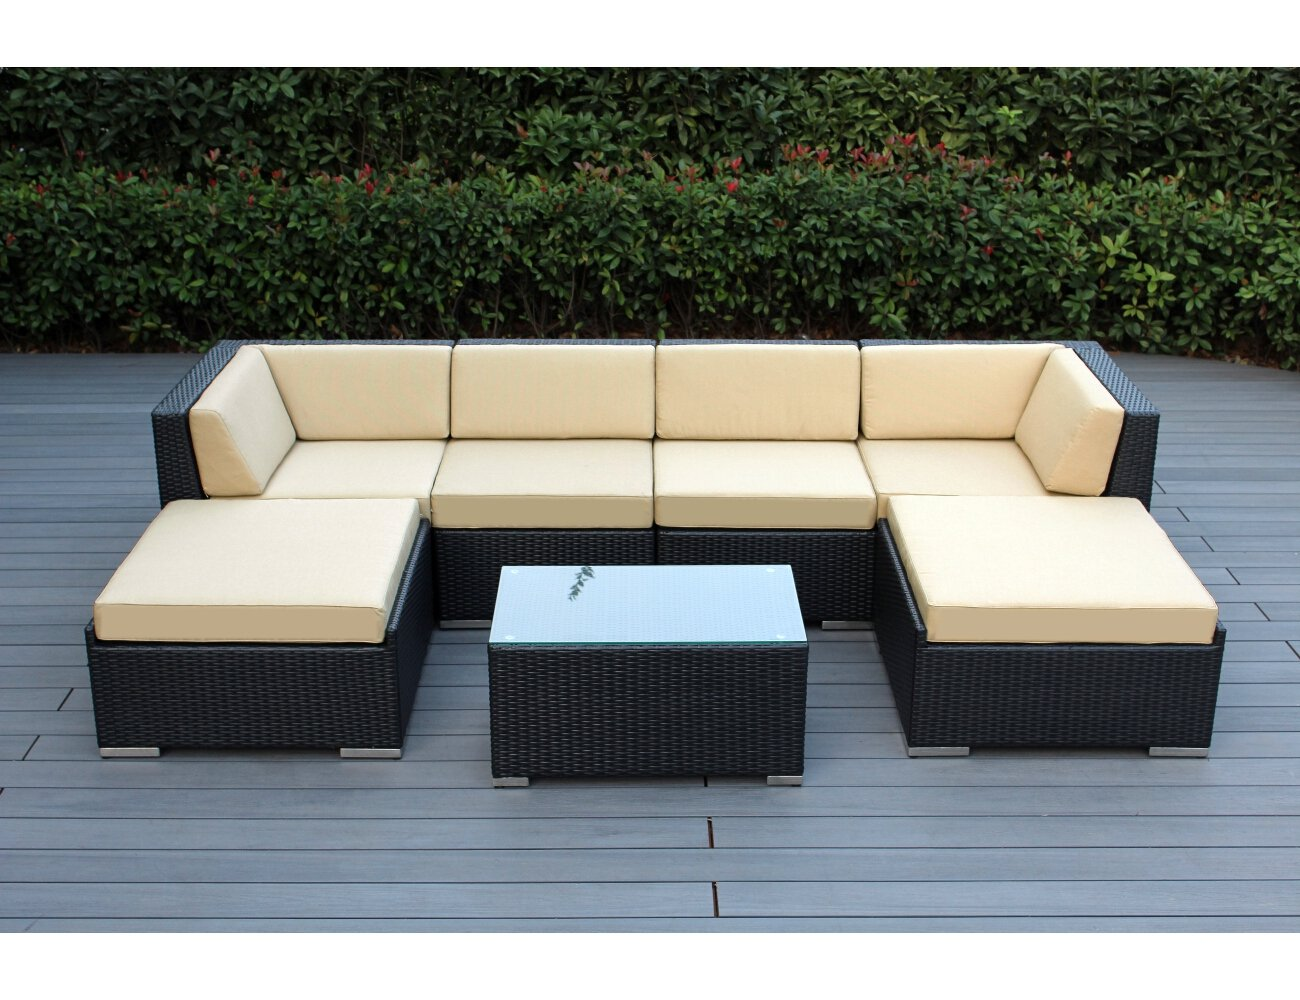 Wicker patio furniture sets weatherproof outdoor living for Outdoor wicker furniture